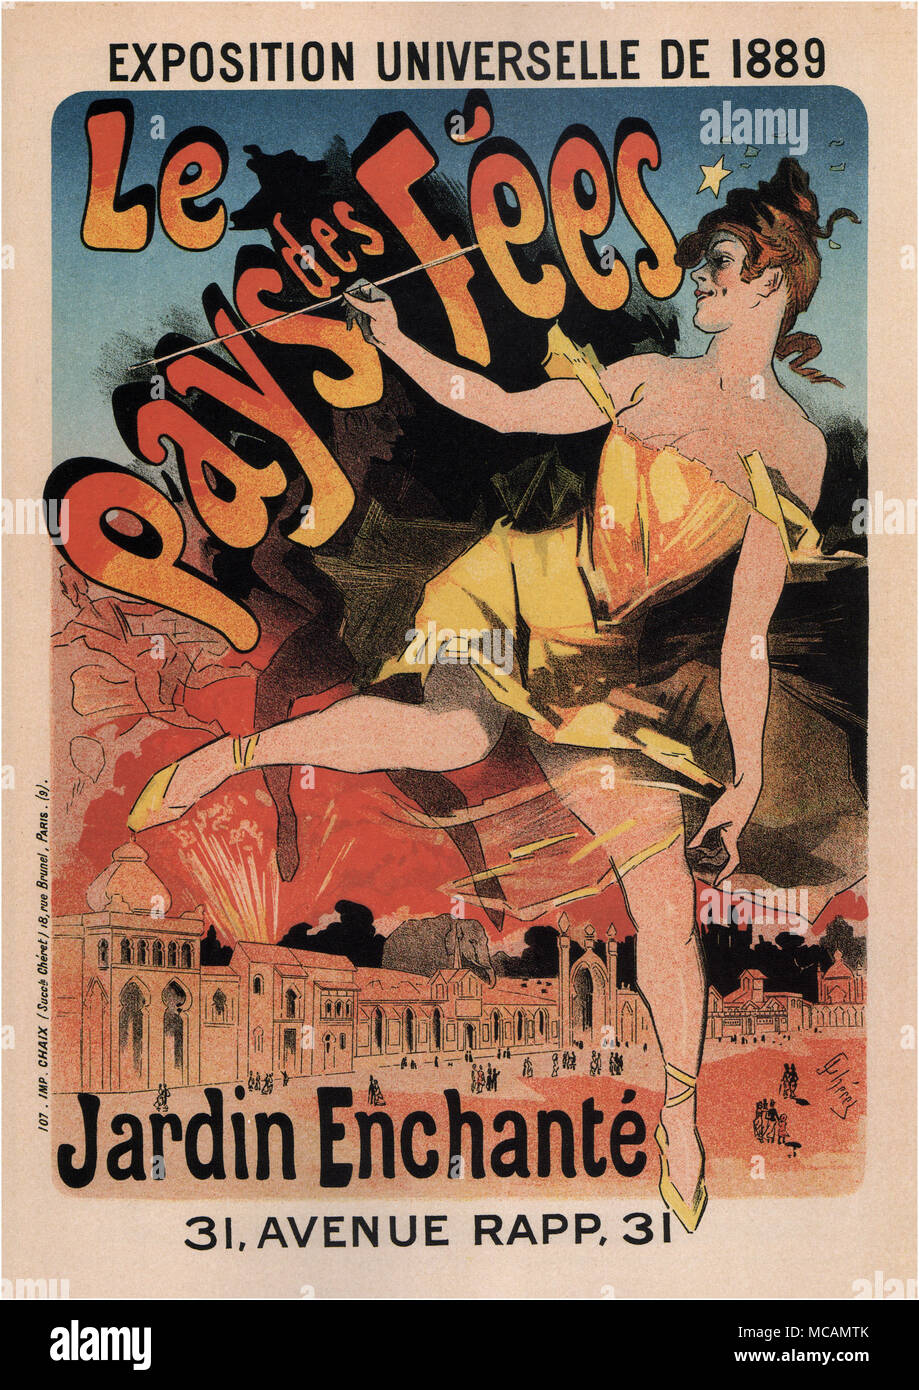 Poster for a Land of Fairies ? Enchanted Garden at the Universal Exposition 1889 in Paris..  Designed by Jules Ch?ret (1836 ? 1932) was a French painter and lithographer.  He worked on everything from theater to advertising. - Stock Image